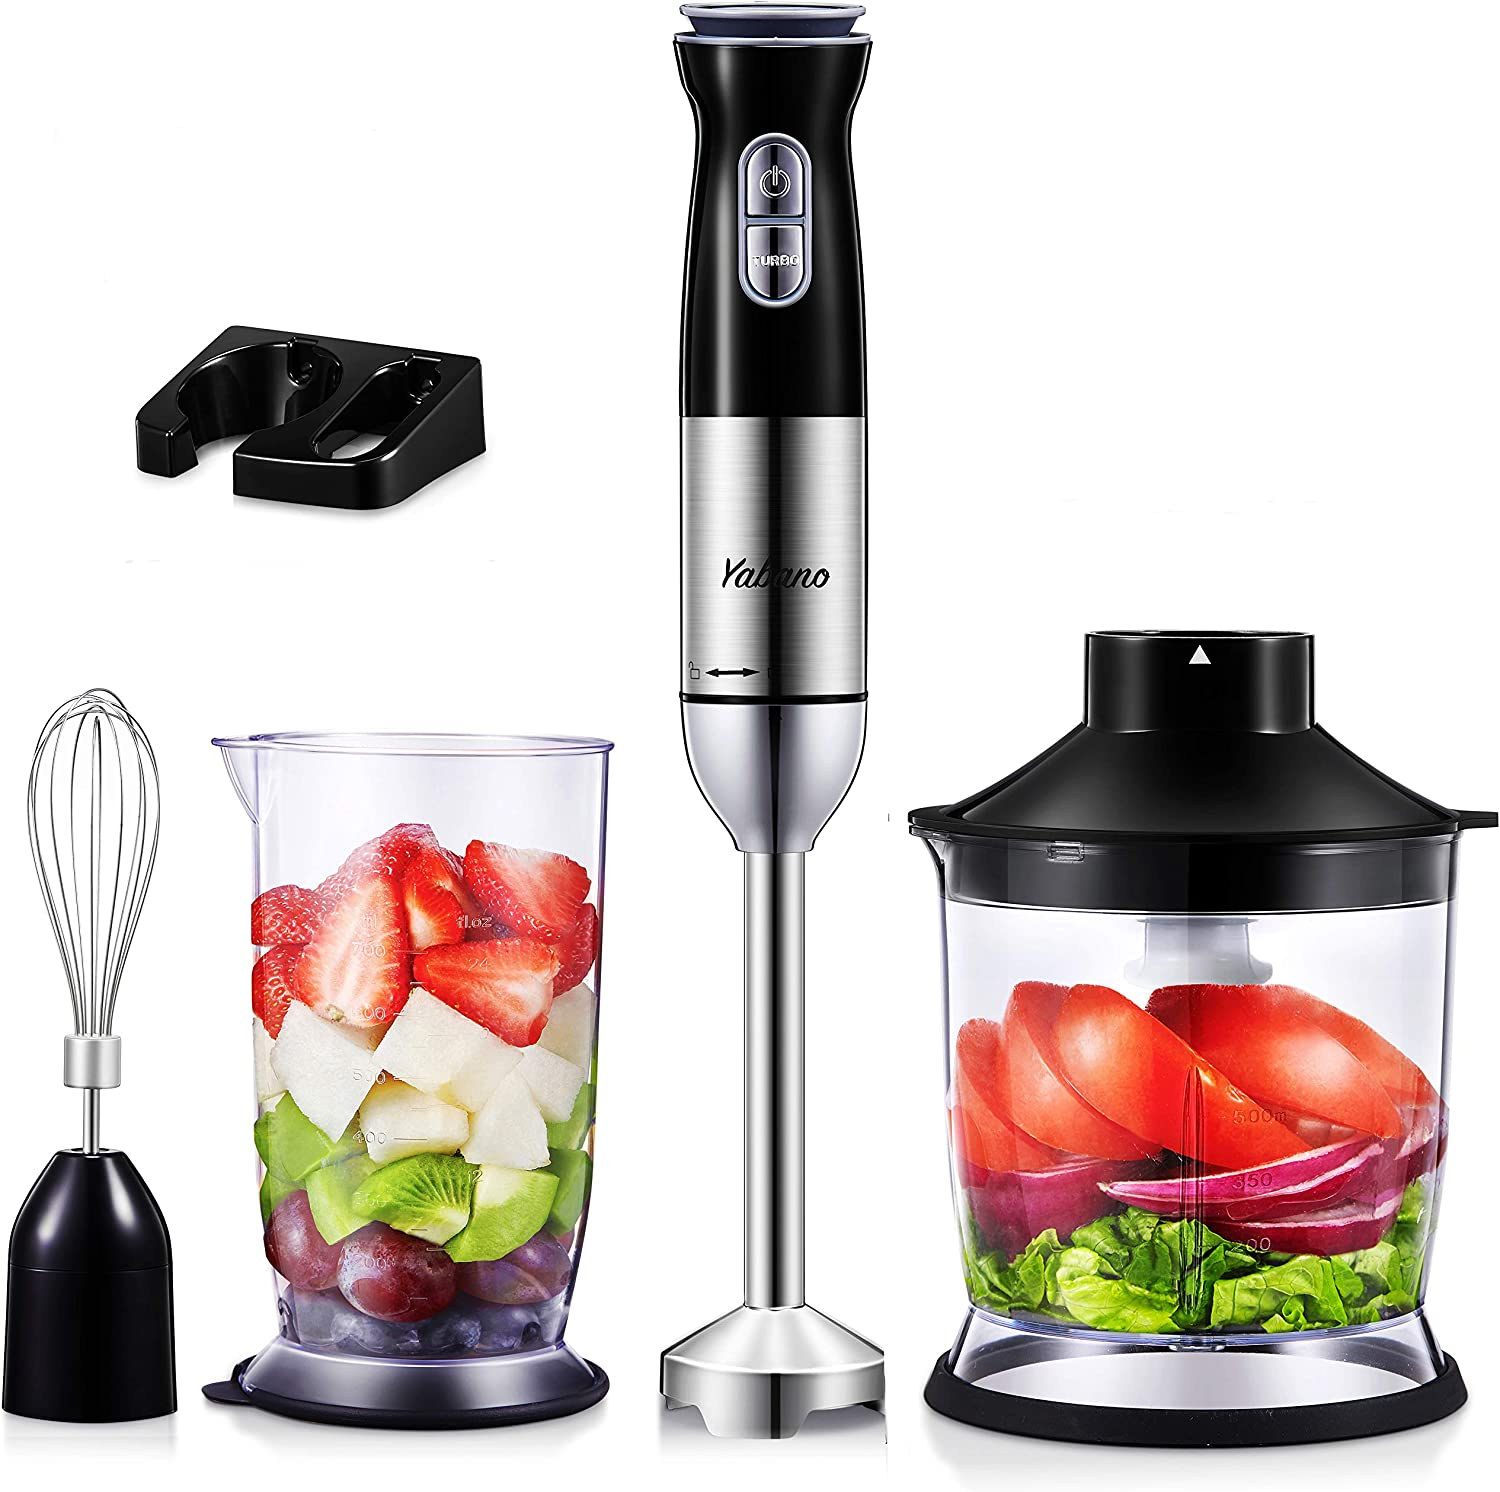 Hand Blender, 5 in 1 Immersion Blender, 12-Speed Stick Blender with 18oz Chopper, Egg Whisk, 24oz Beaker, Wall Mount, for Hot Soup Sauces Juices Smoothies Puree Food, BPA Free, Dishwasher Safe, by Yabano